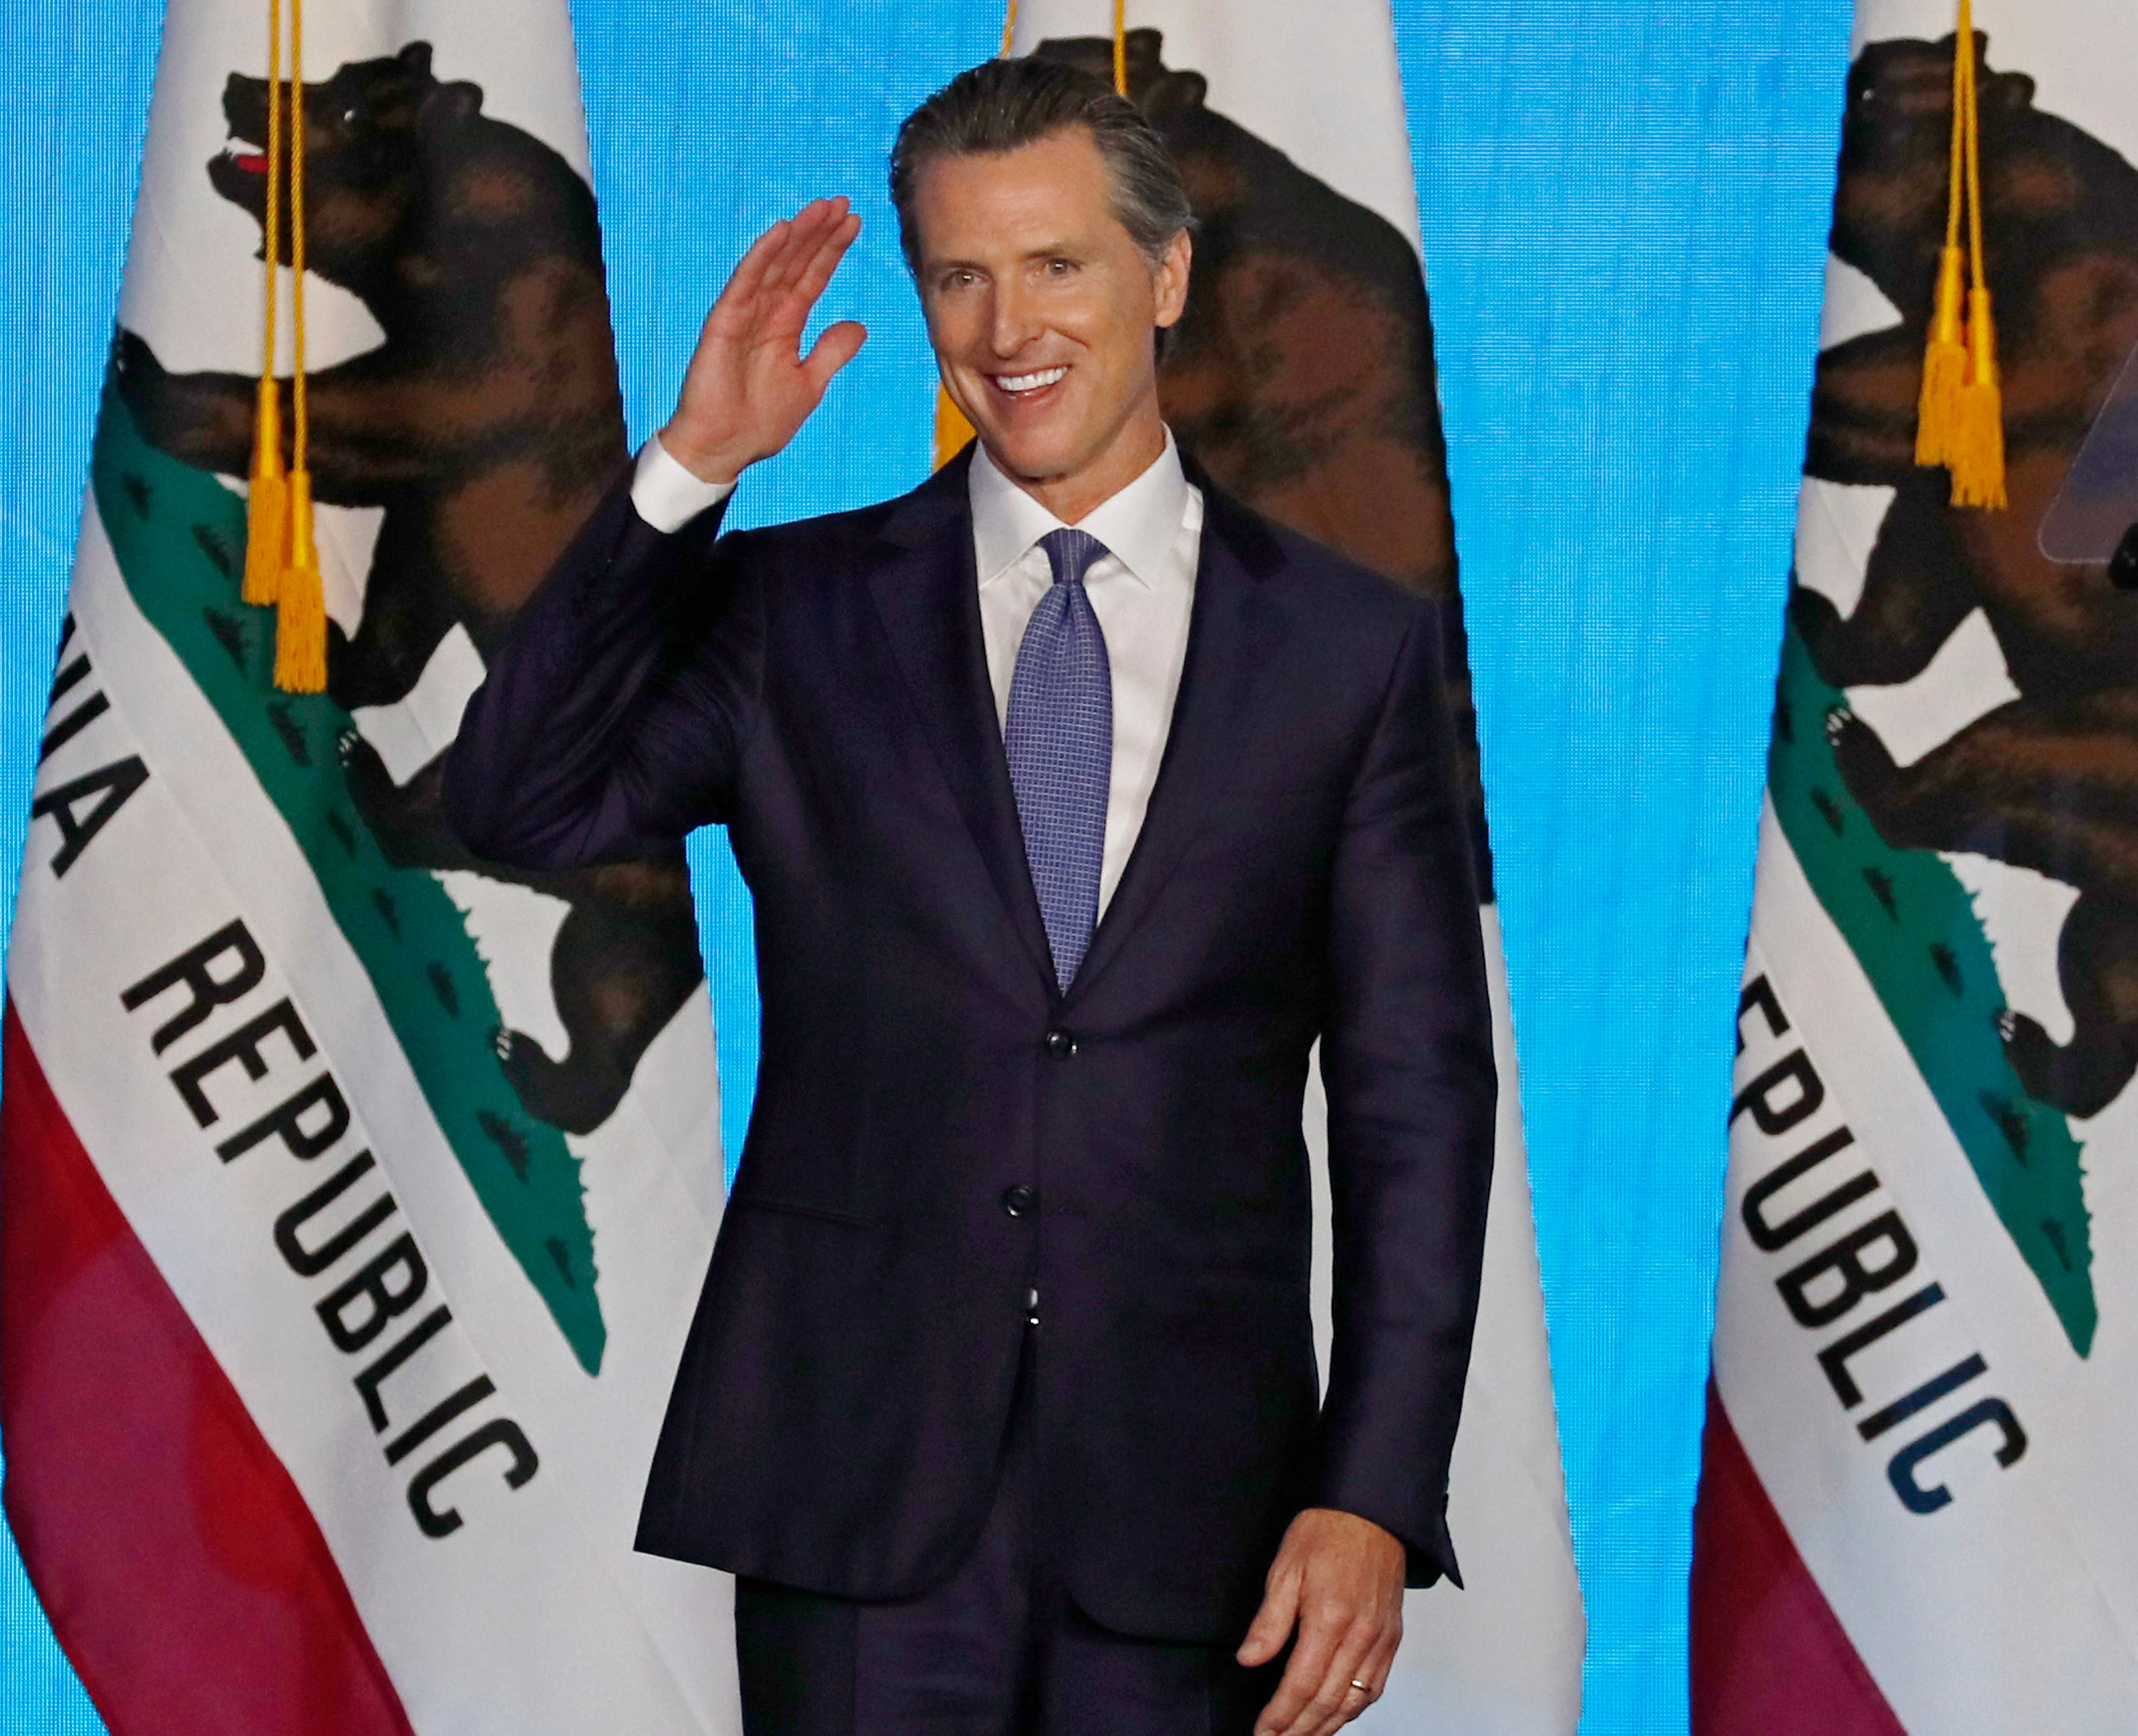 California Governor Gavin Newsom gestures after he was sworn in during his inauguration ceremony at the State Capitol in Sacramento.